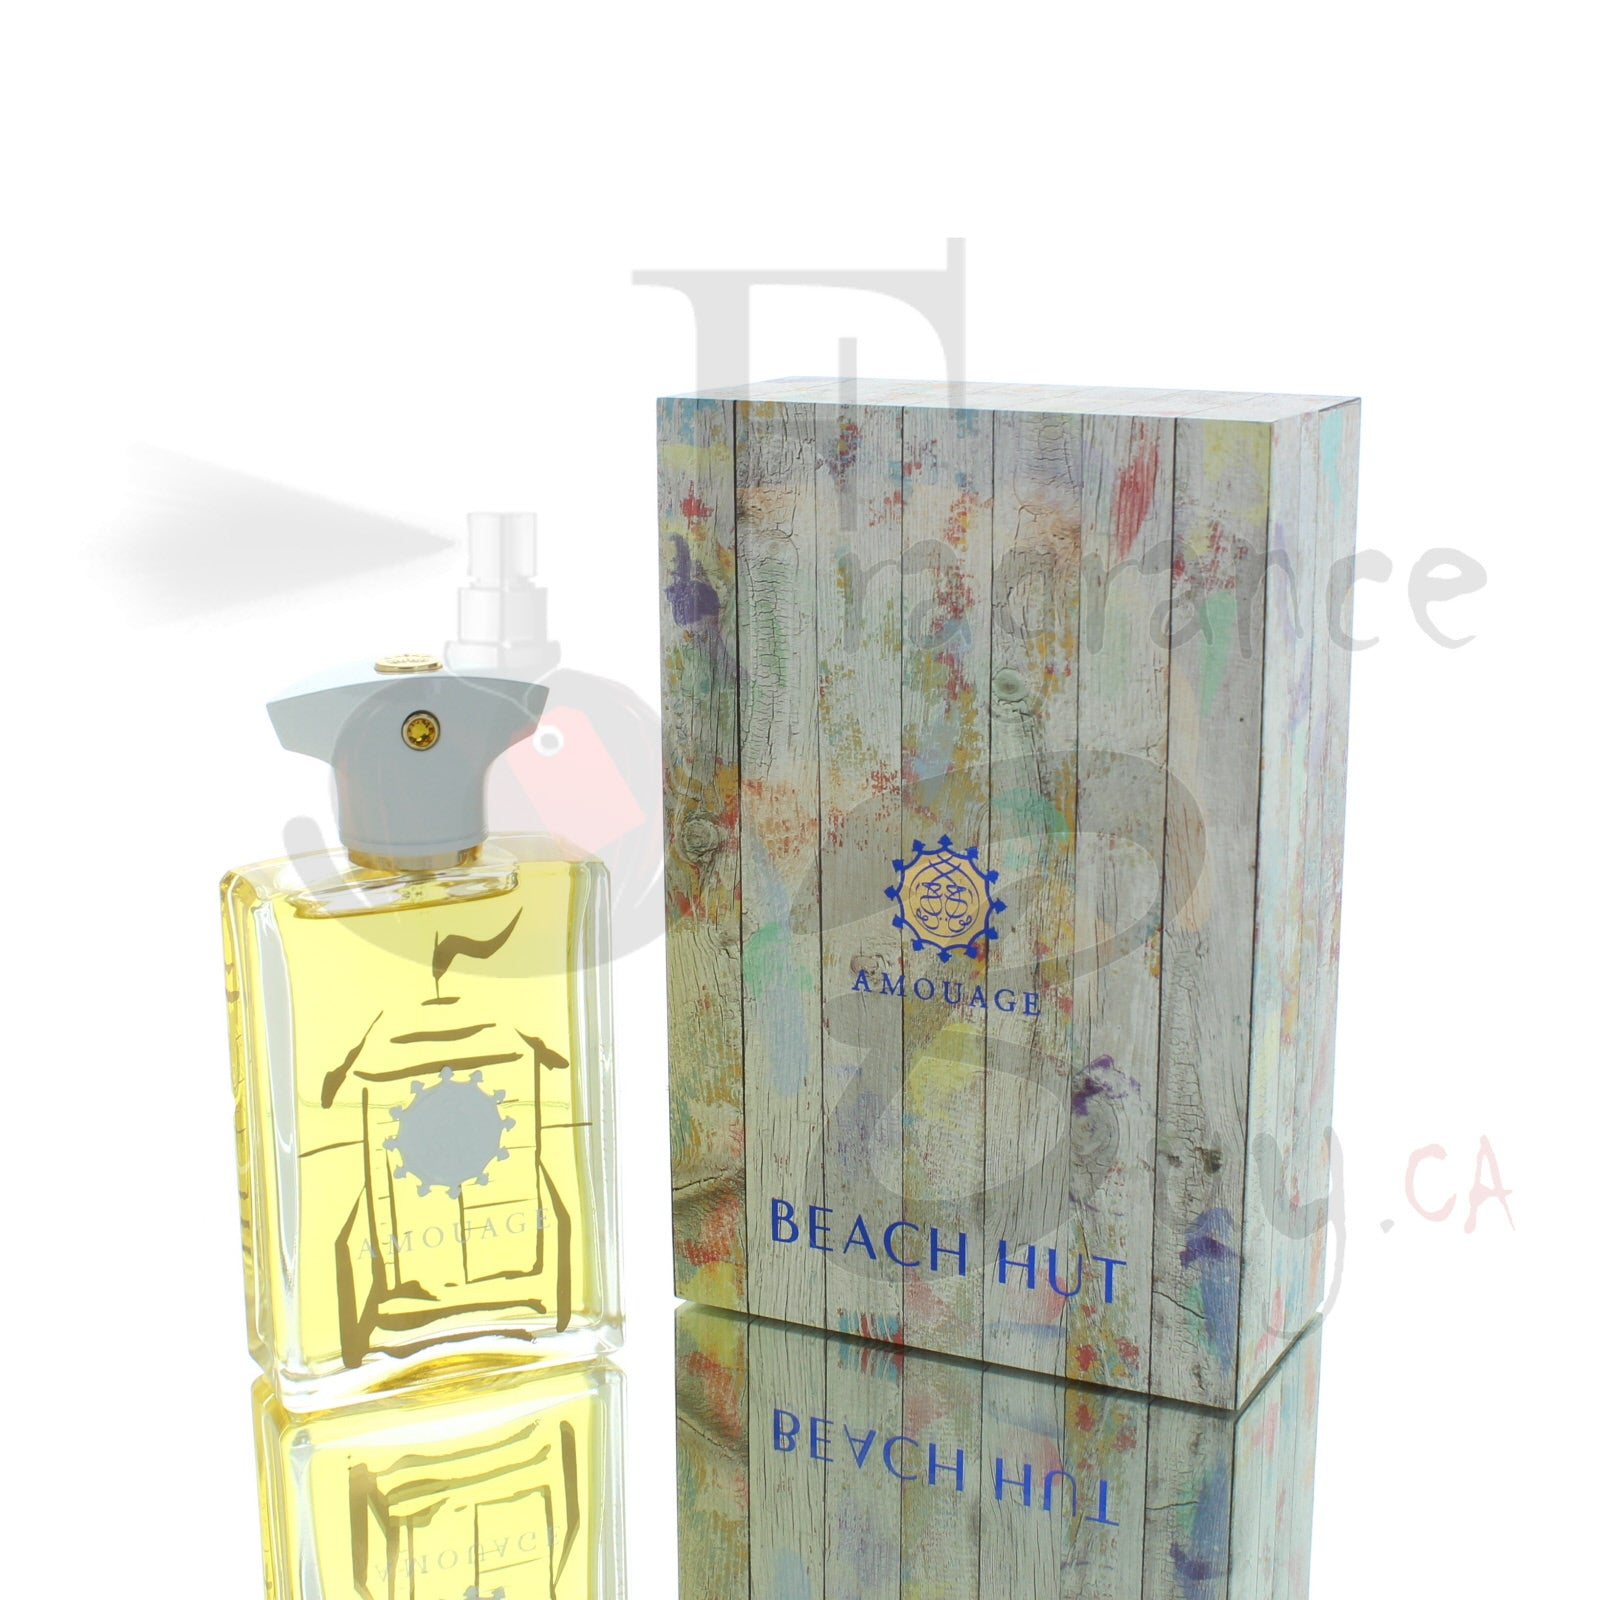 Amouage Beach Hut For Man